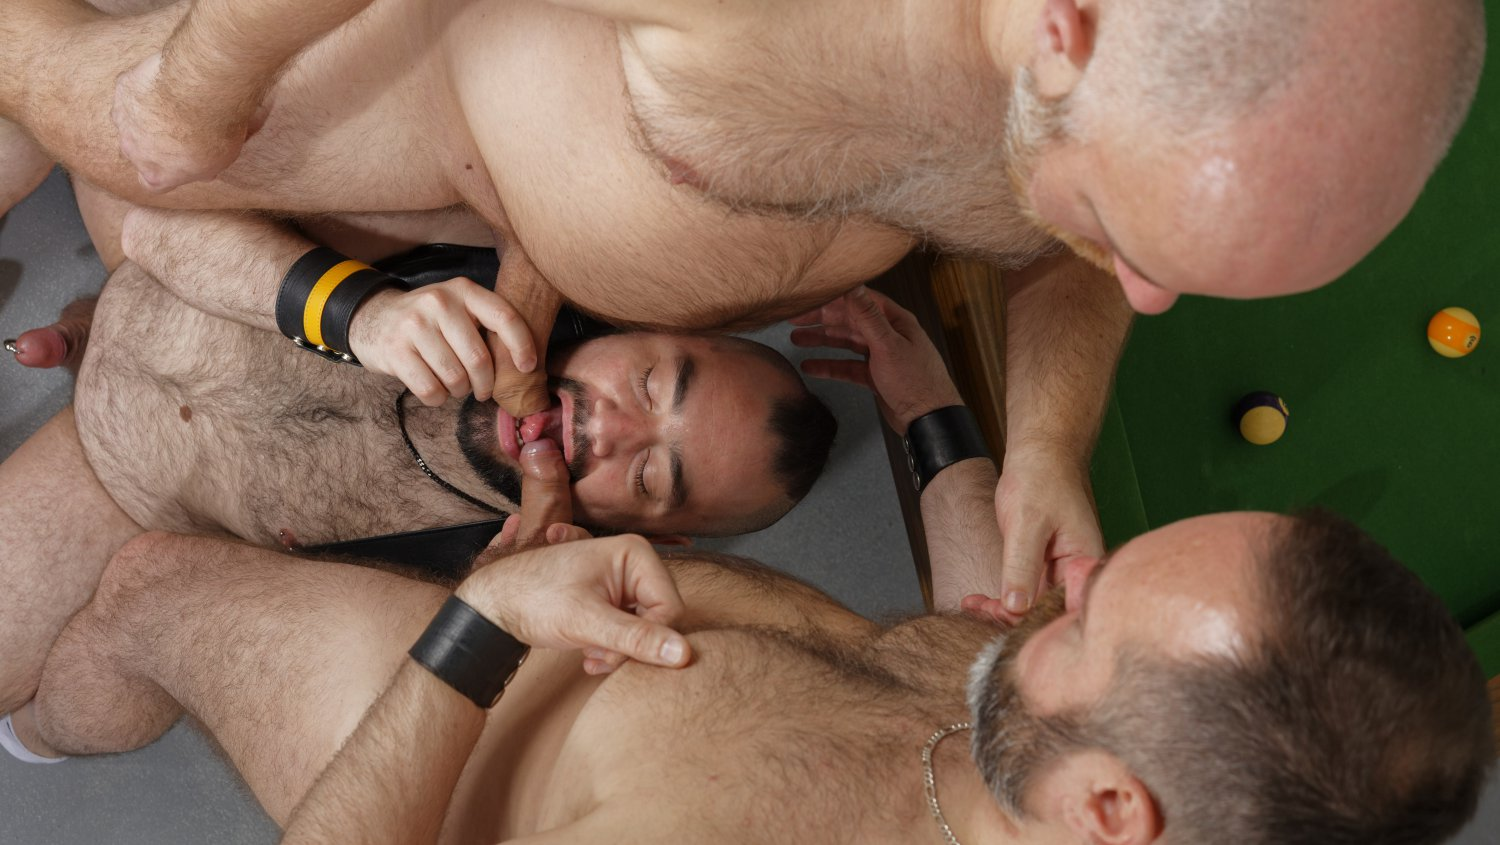 Guy English, Joe Hardness and Bearsilien - BearFilms Opposite sex friends that drop friends when dating someone new